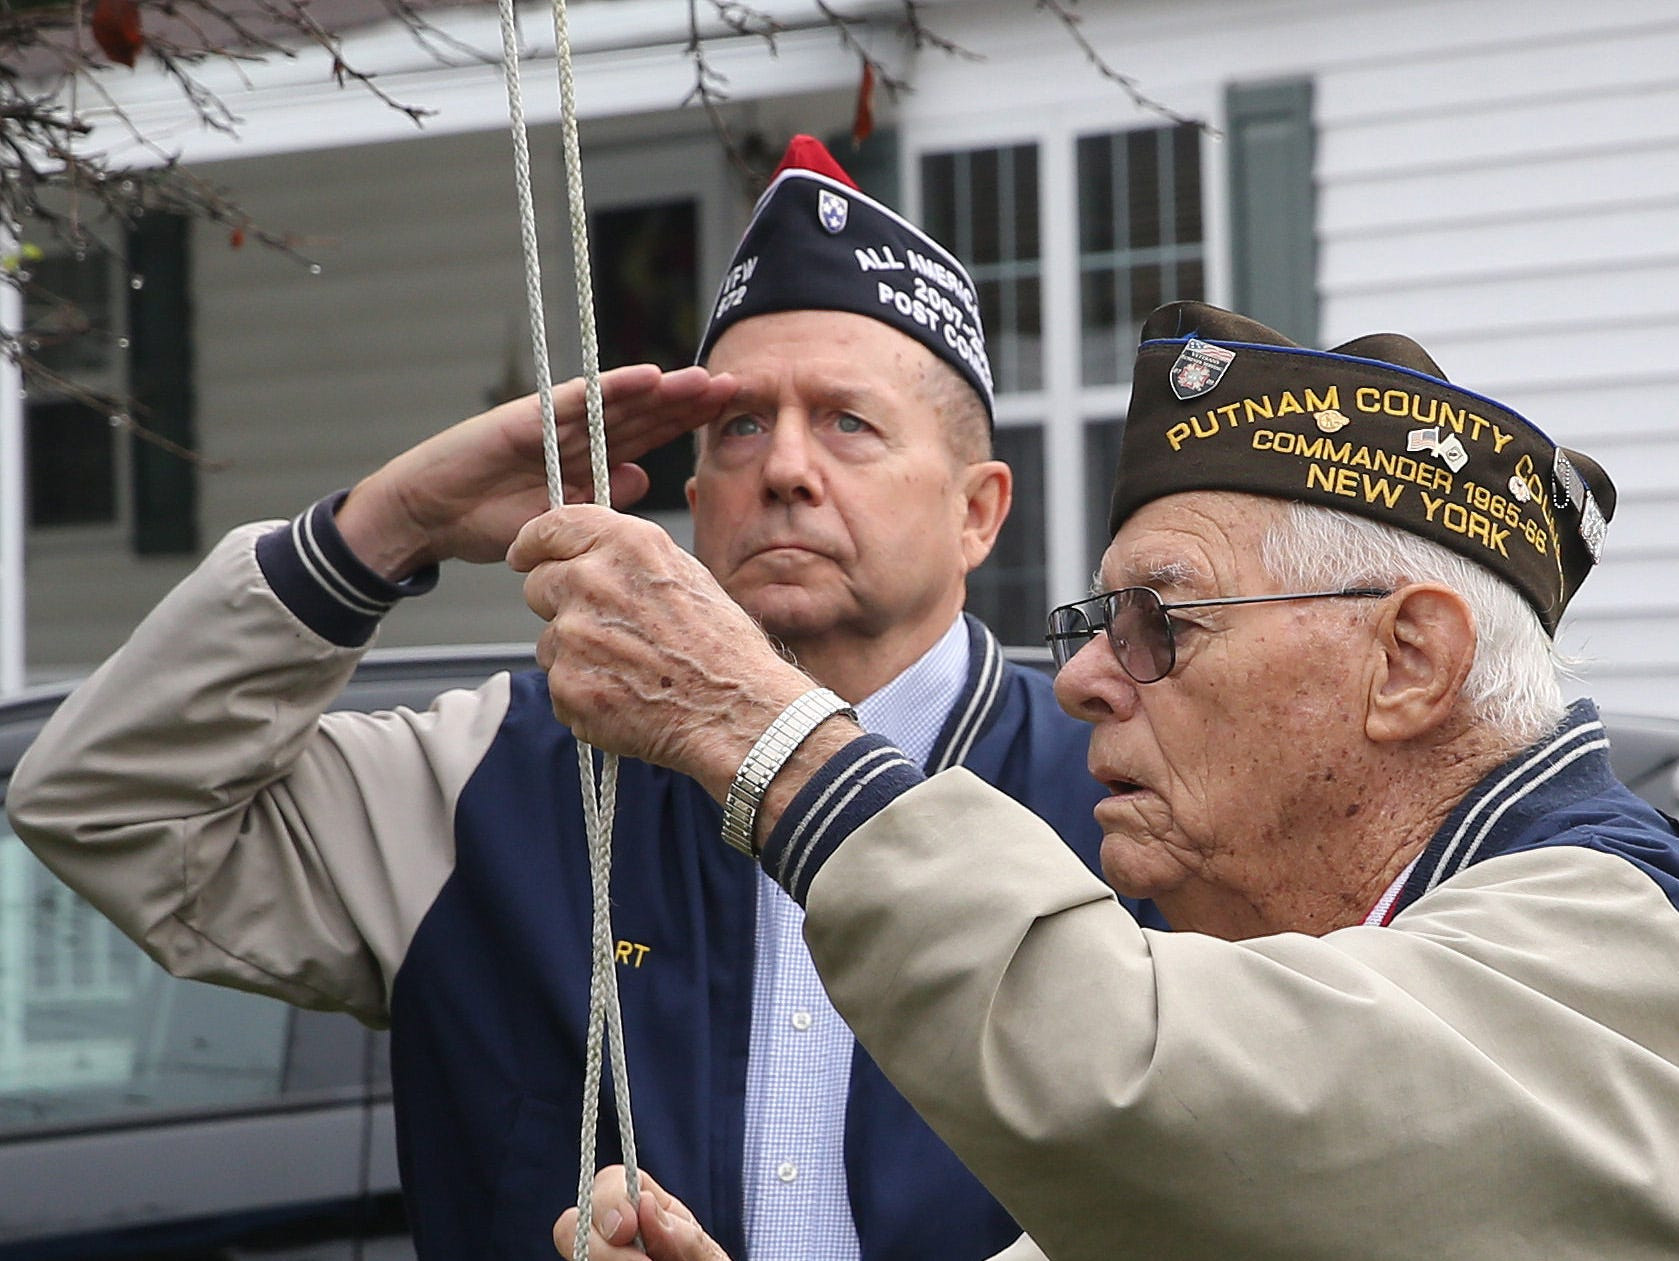 Art Hanley salutes as WWII veteran Tom Smith raises the American flag during at 9-11 remembrance at Sometime Retirement Community in Brewster Sept.  Sept. 11, 2018.